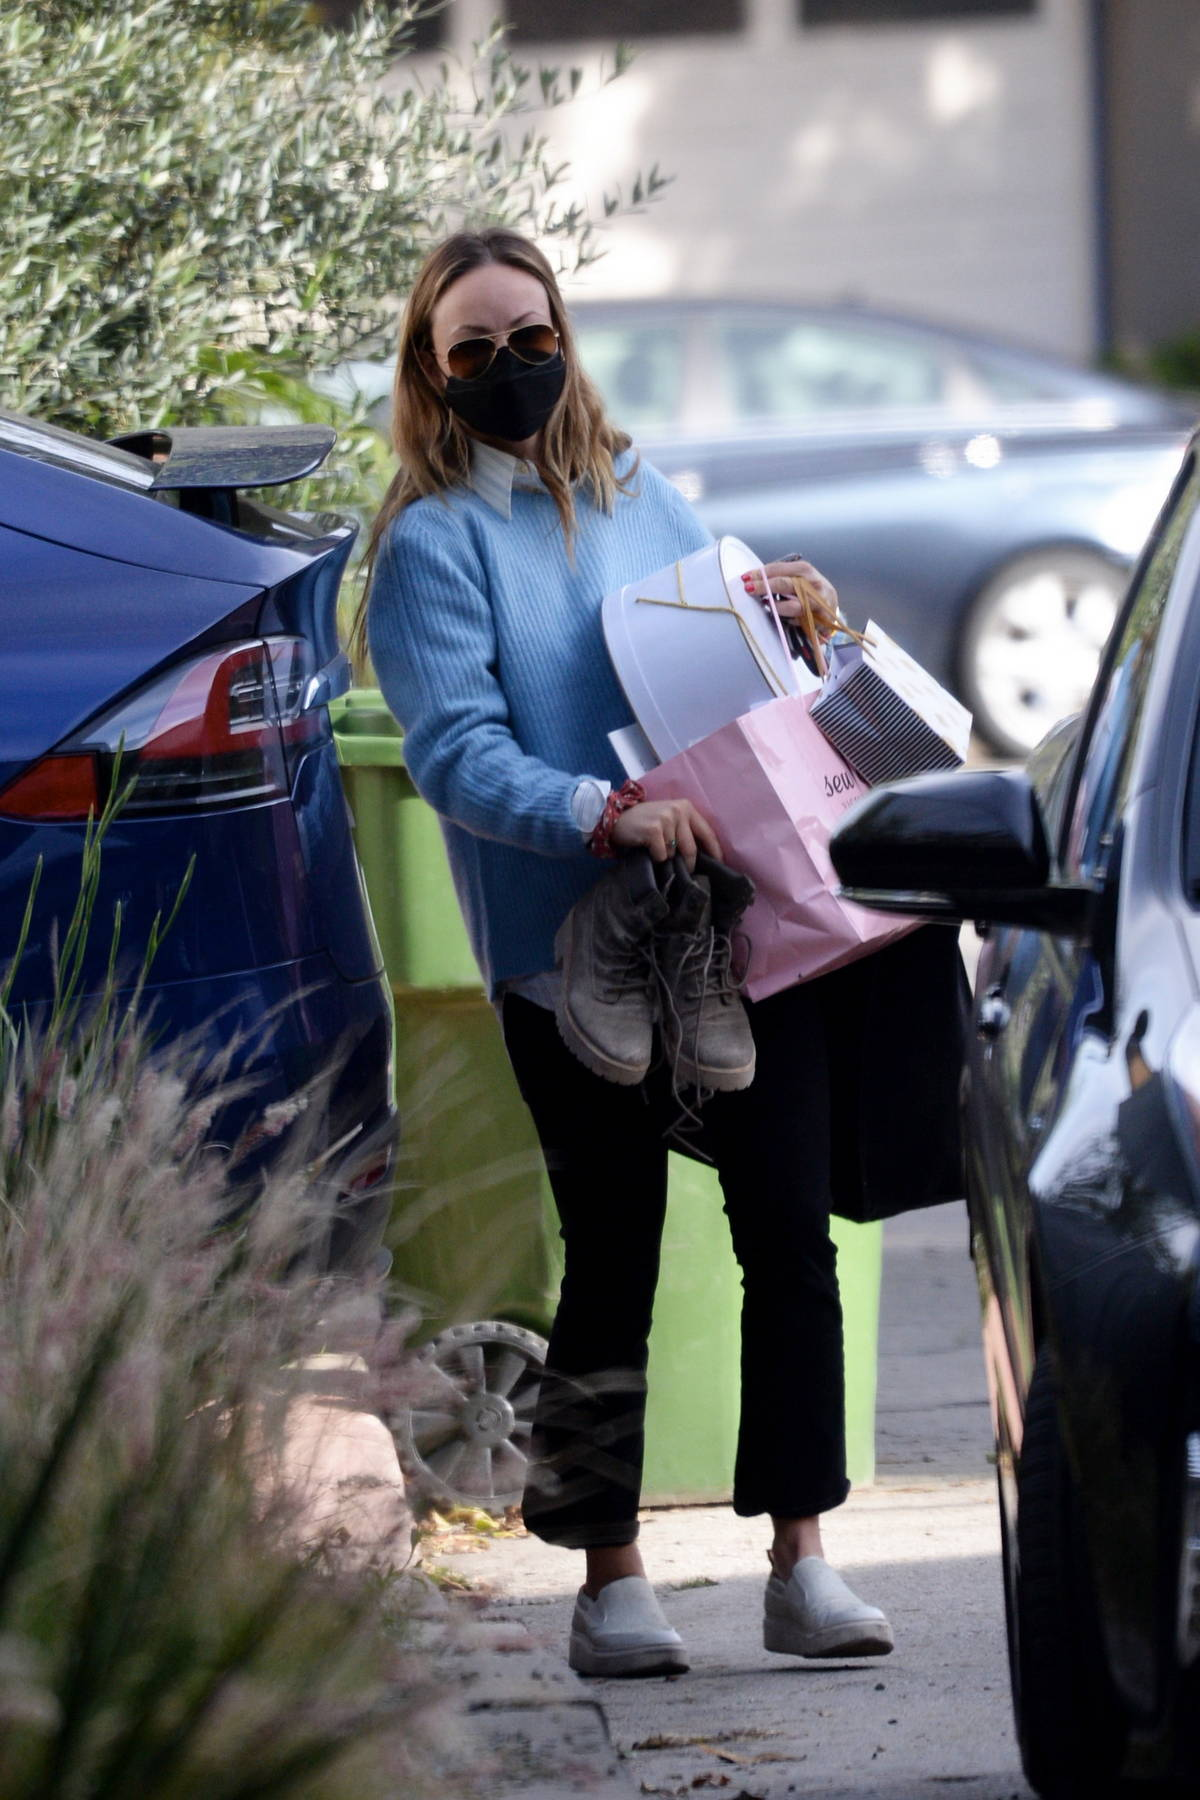 Olivia Wilde spotted carrying stuffs into the house she shares with Jason Sudeikis in Los Angeles